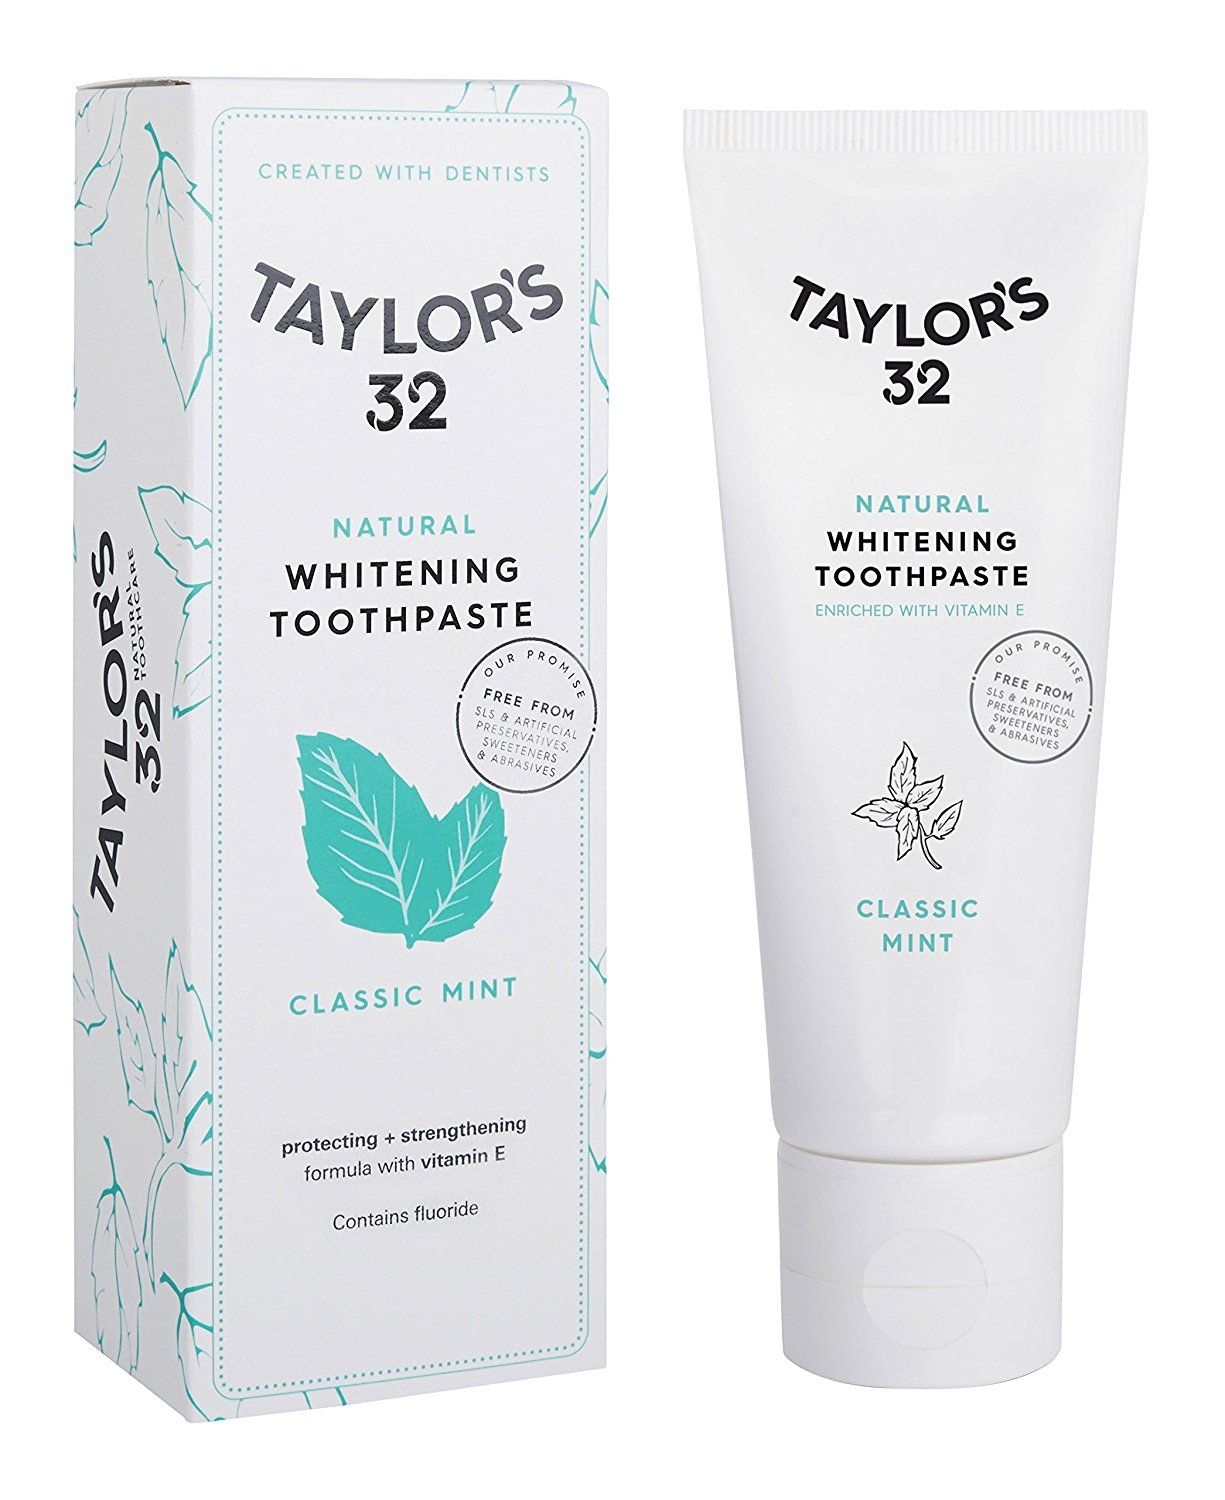 Taylor S 32 Natural Whitening Toothpaste Classic Mint Amazon Co Uk Health Per Natural Whitening Toothpaste Whitening Toothpaste Teeth Whitening Toothpaste